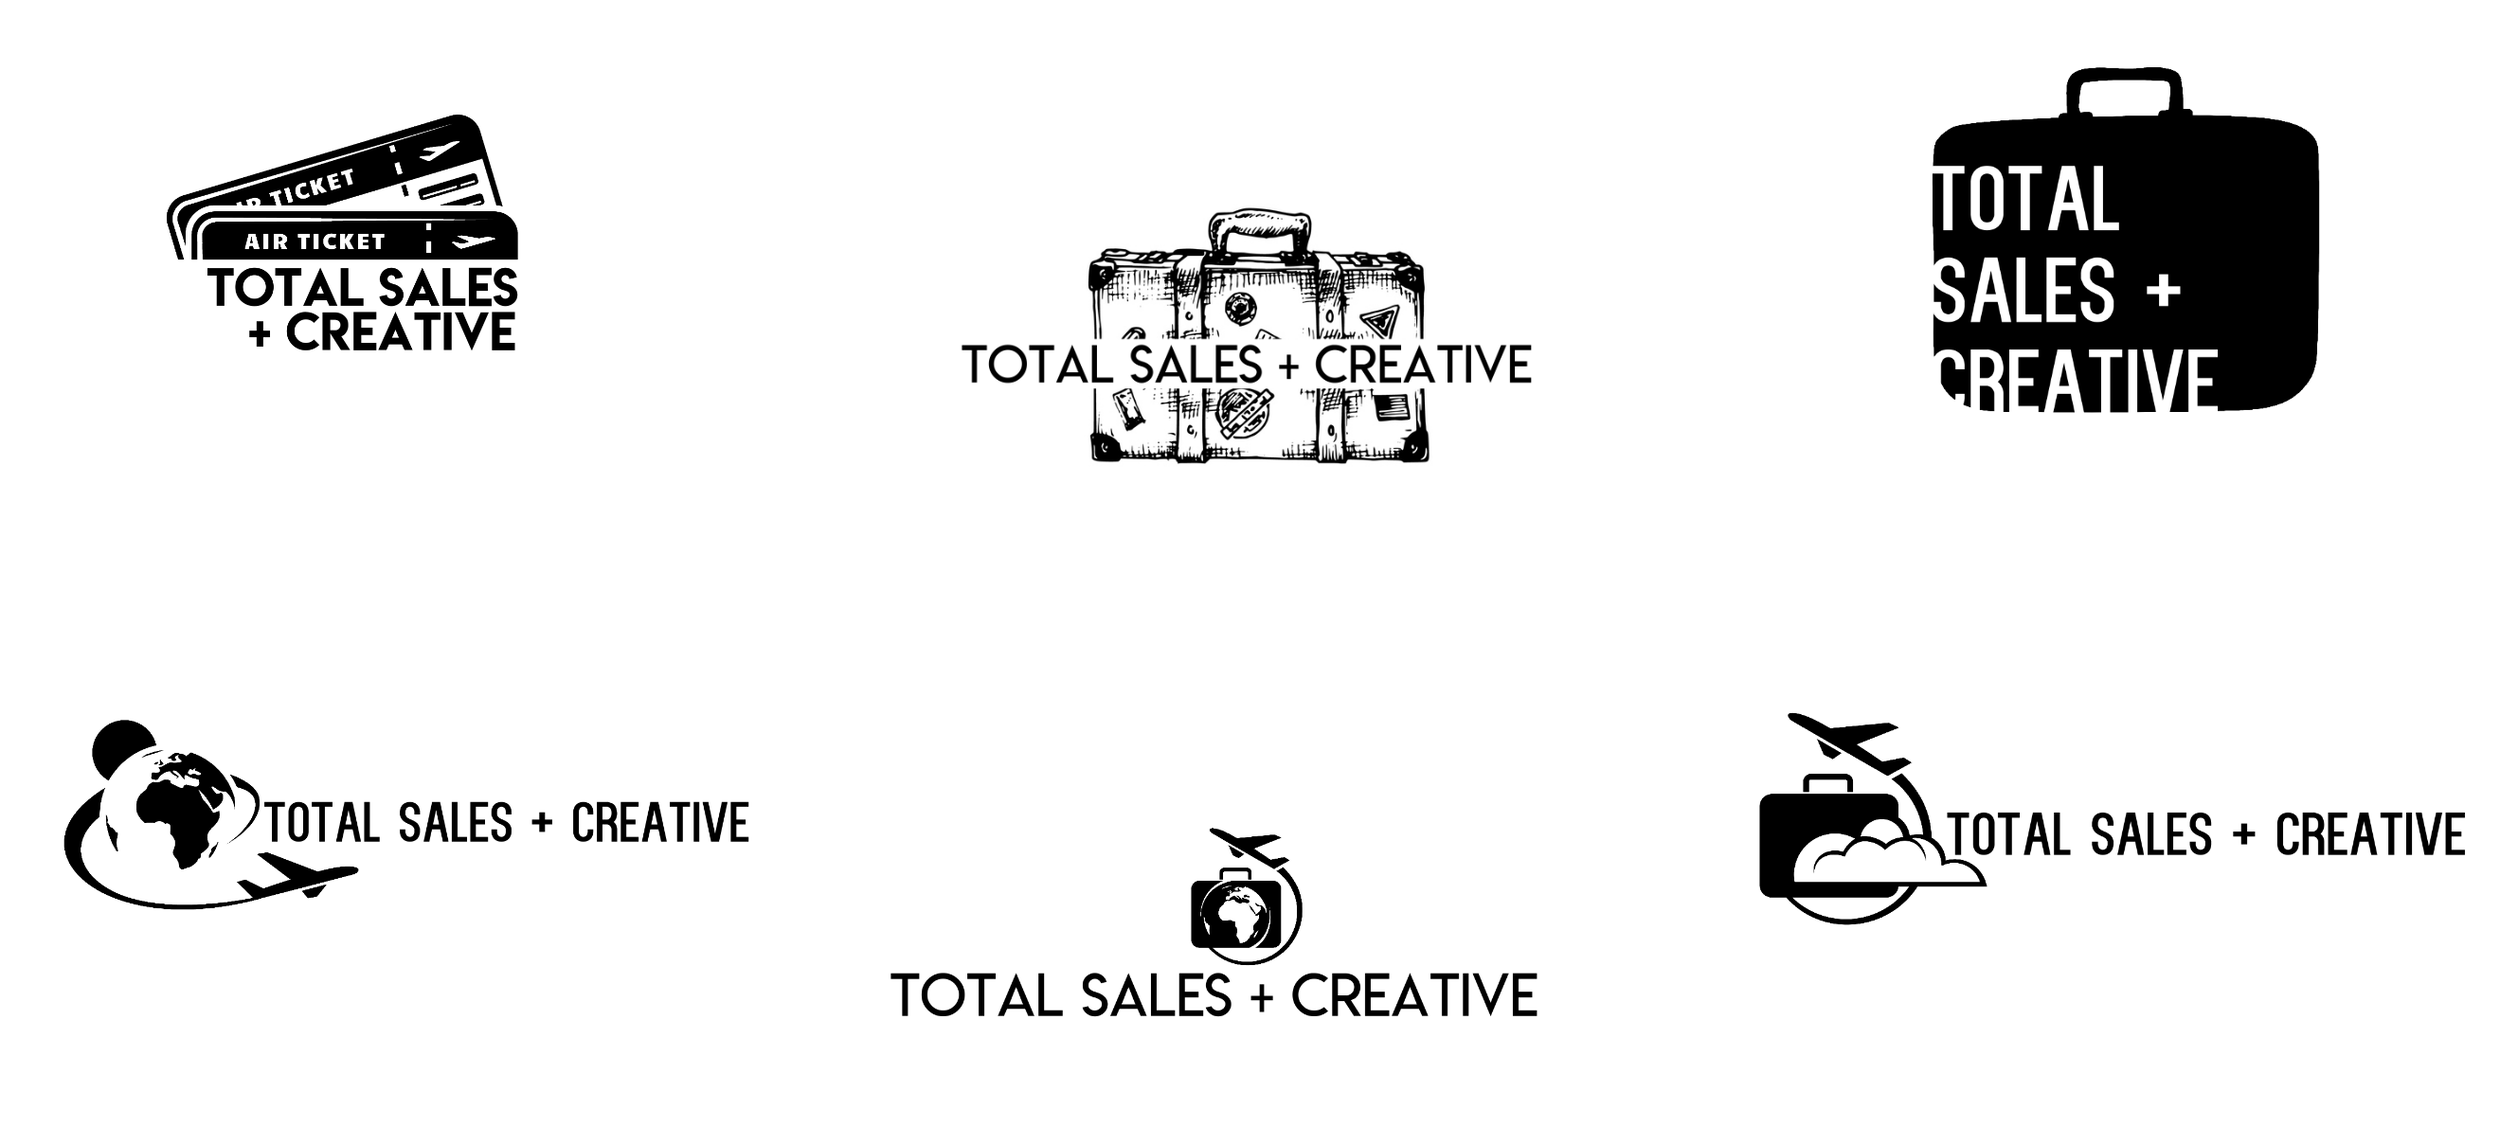 total sales + creative logo concepts sheet.png